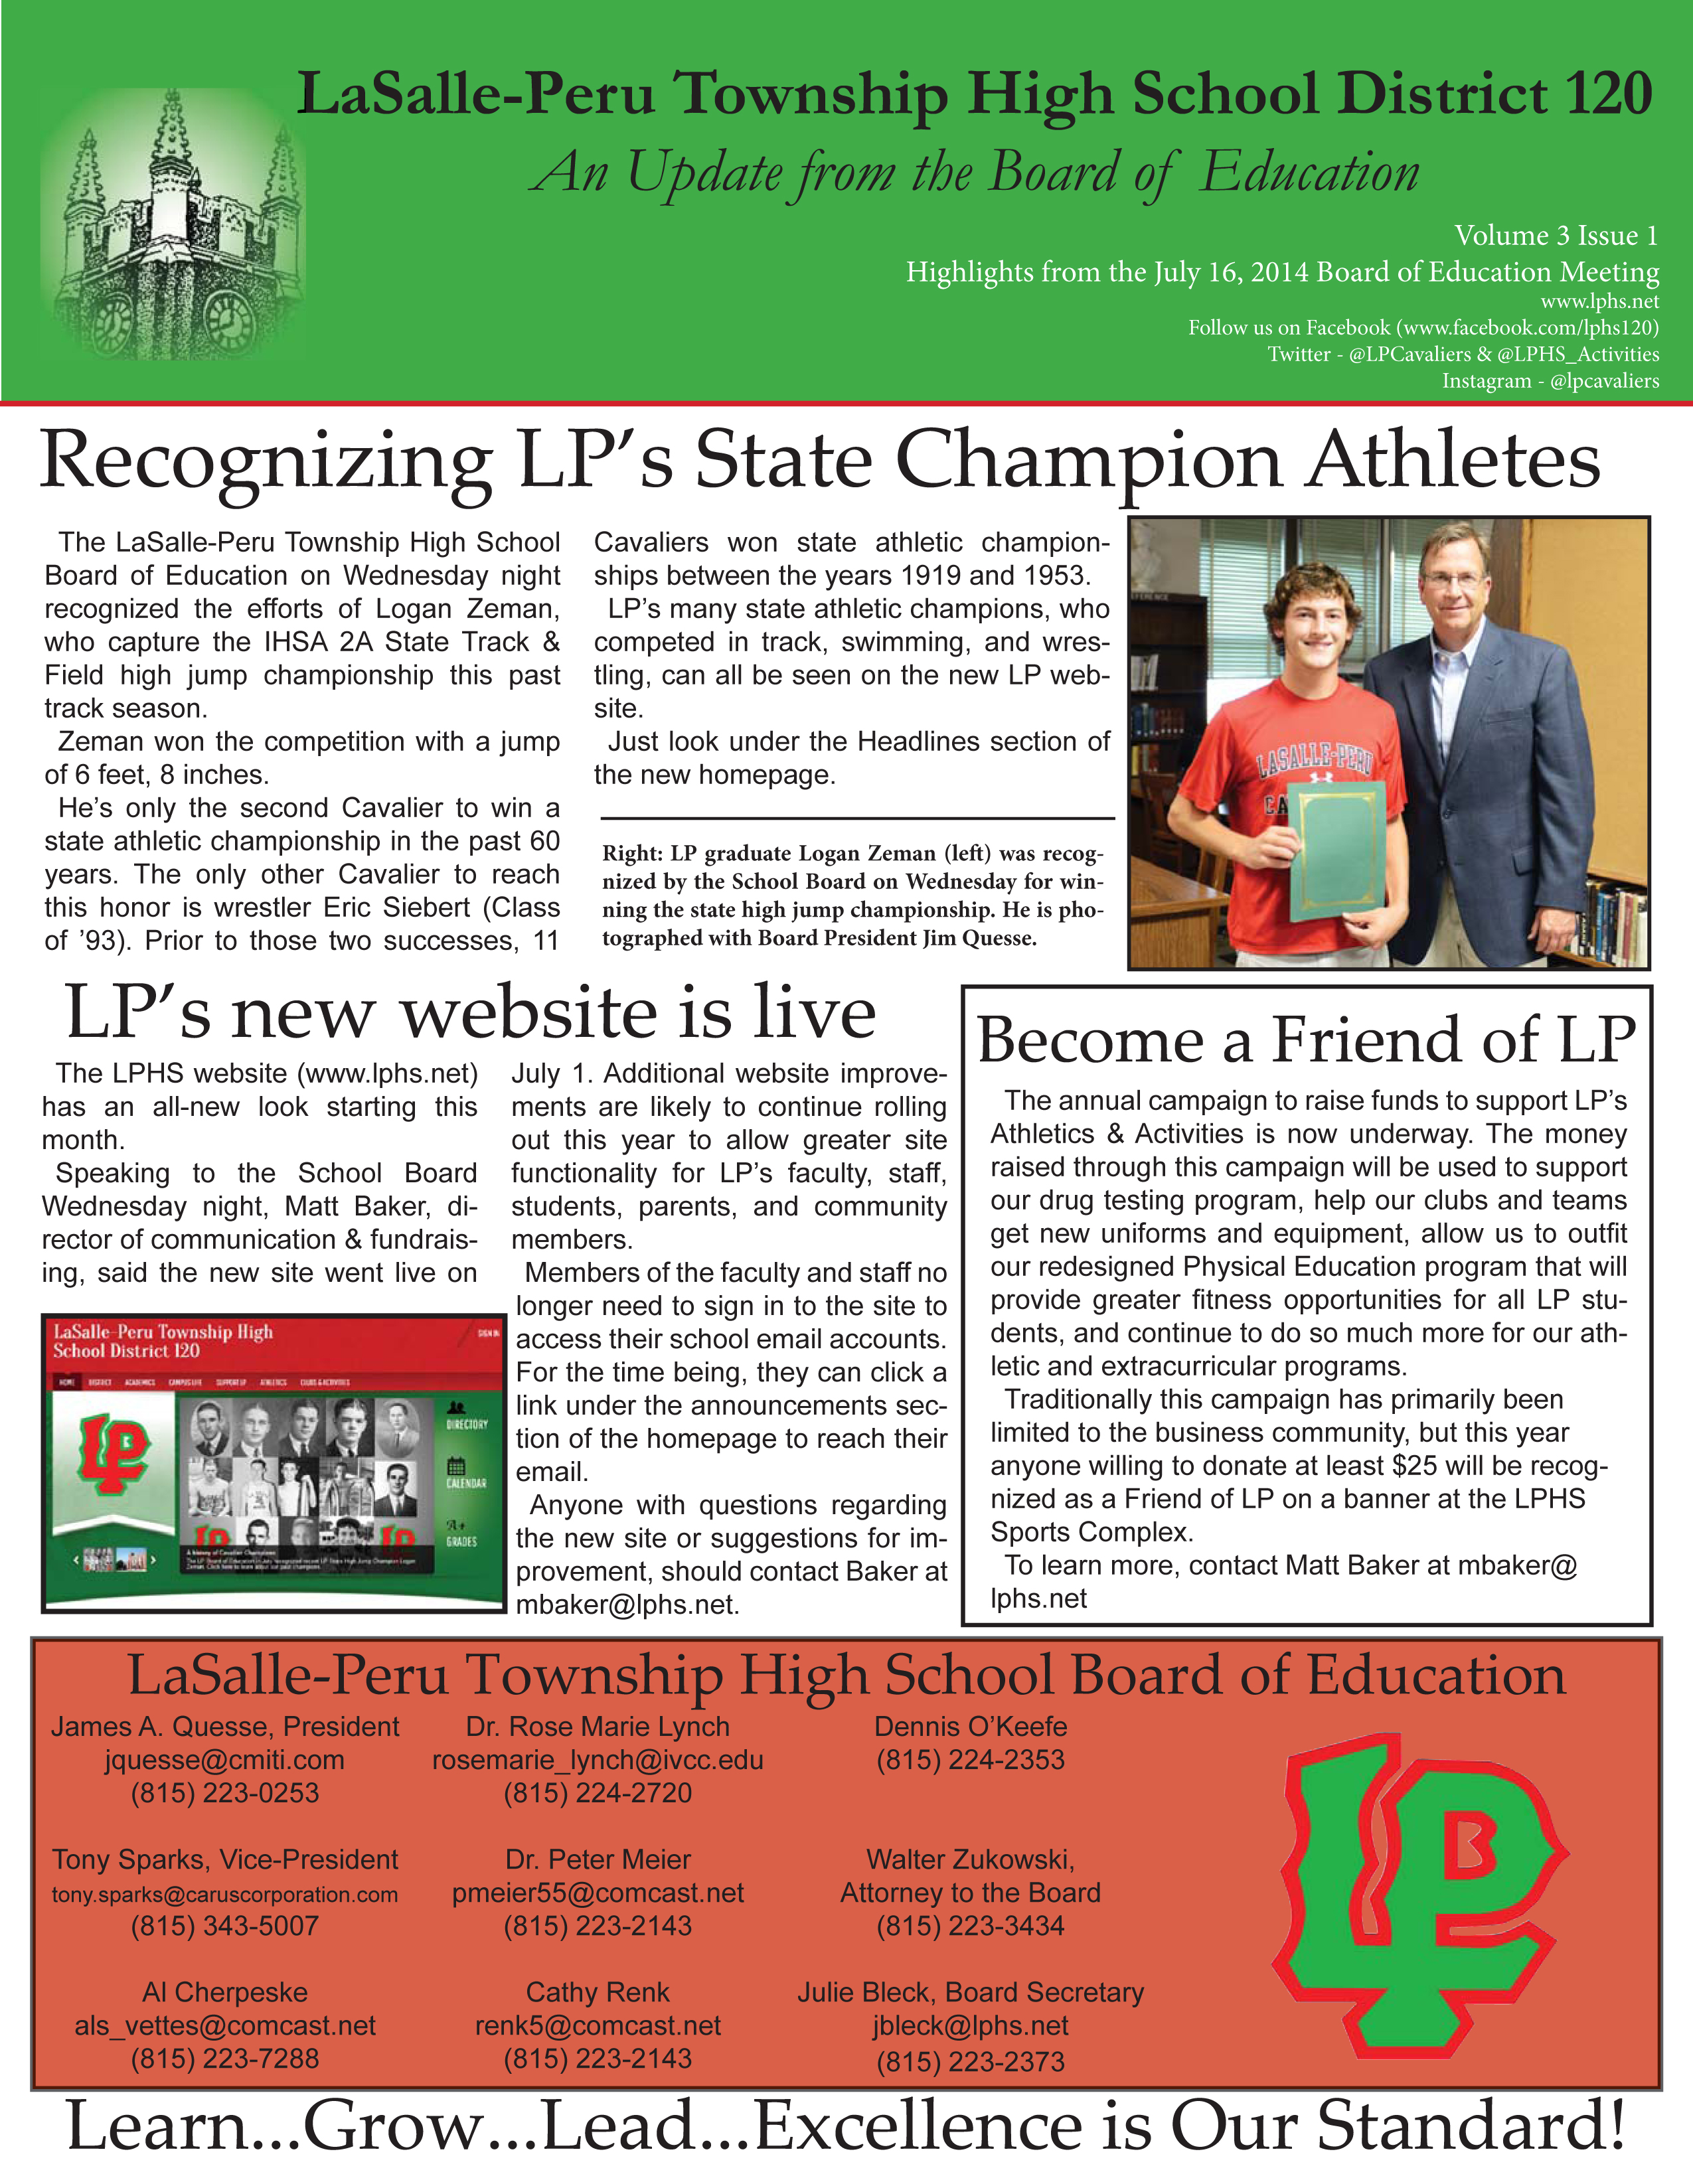 The July 2014 LPHS Board Update